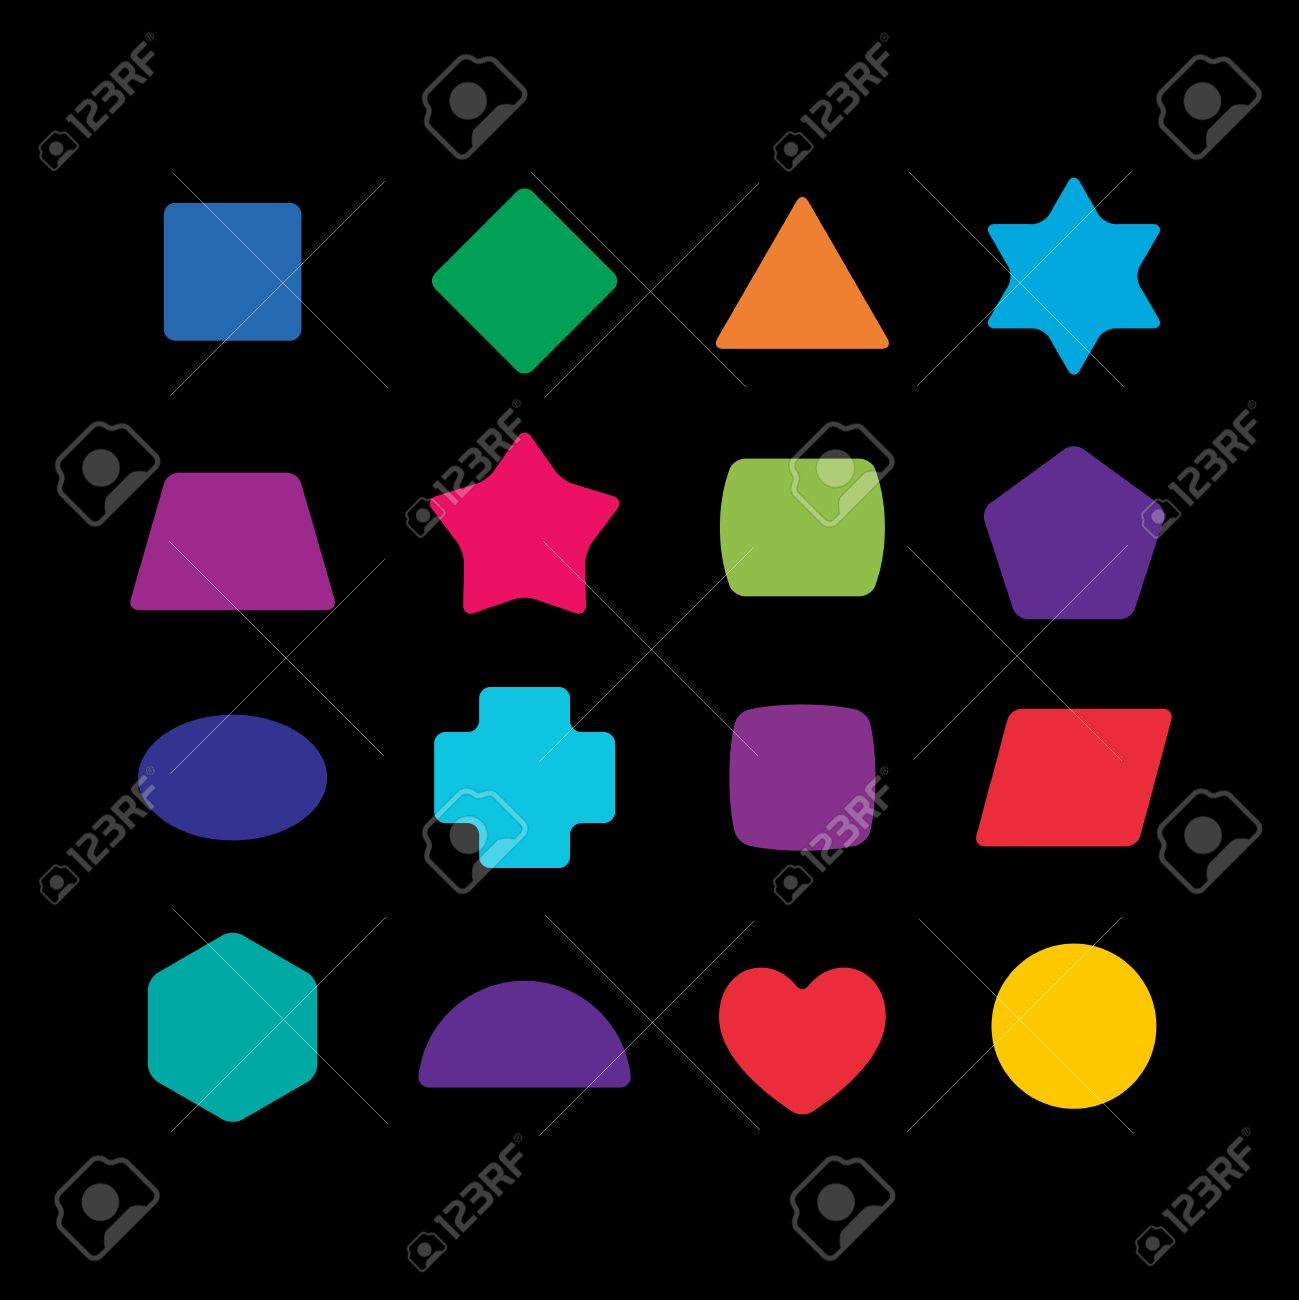 Geometric colorful rounded corners shapes set for learning toys. - 54919095